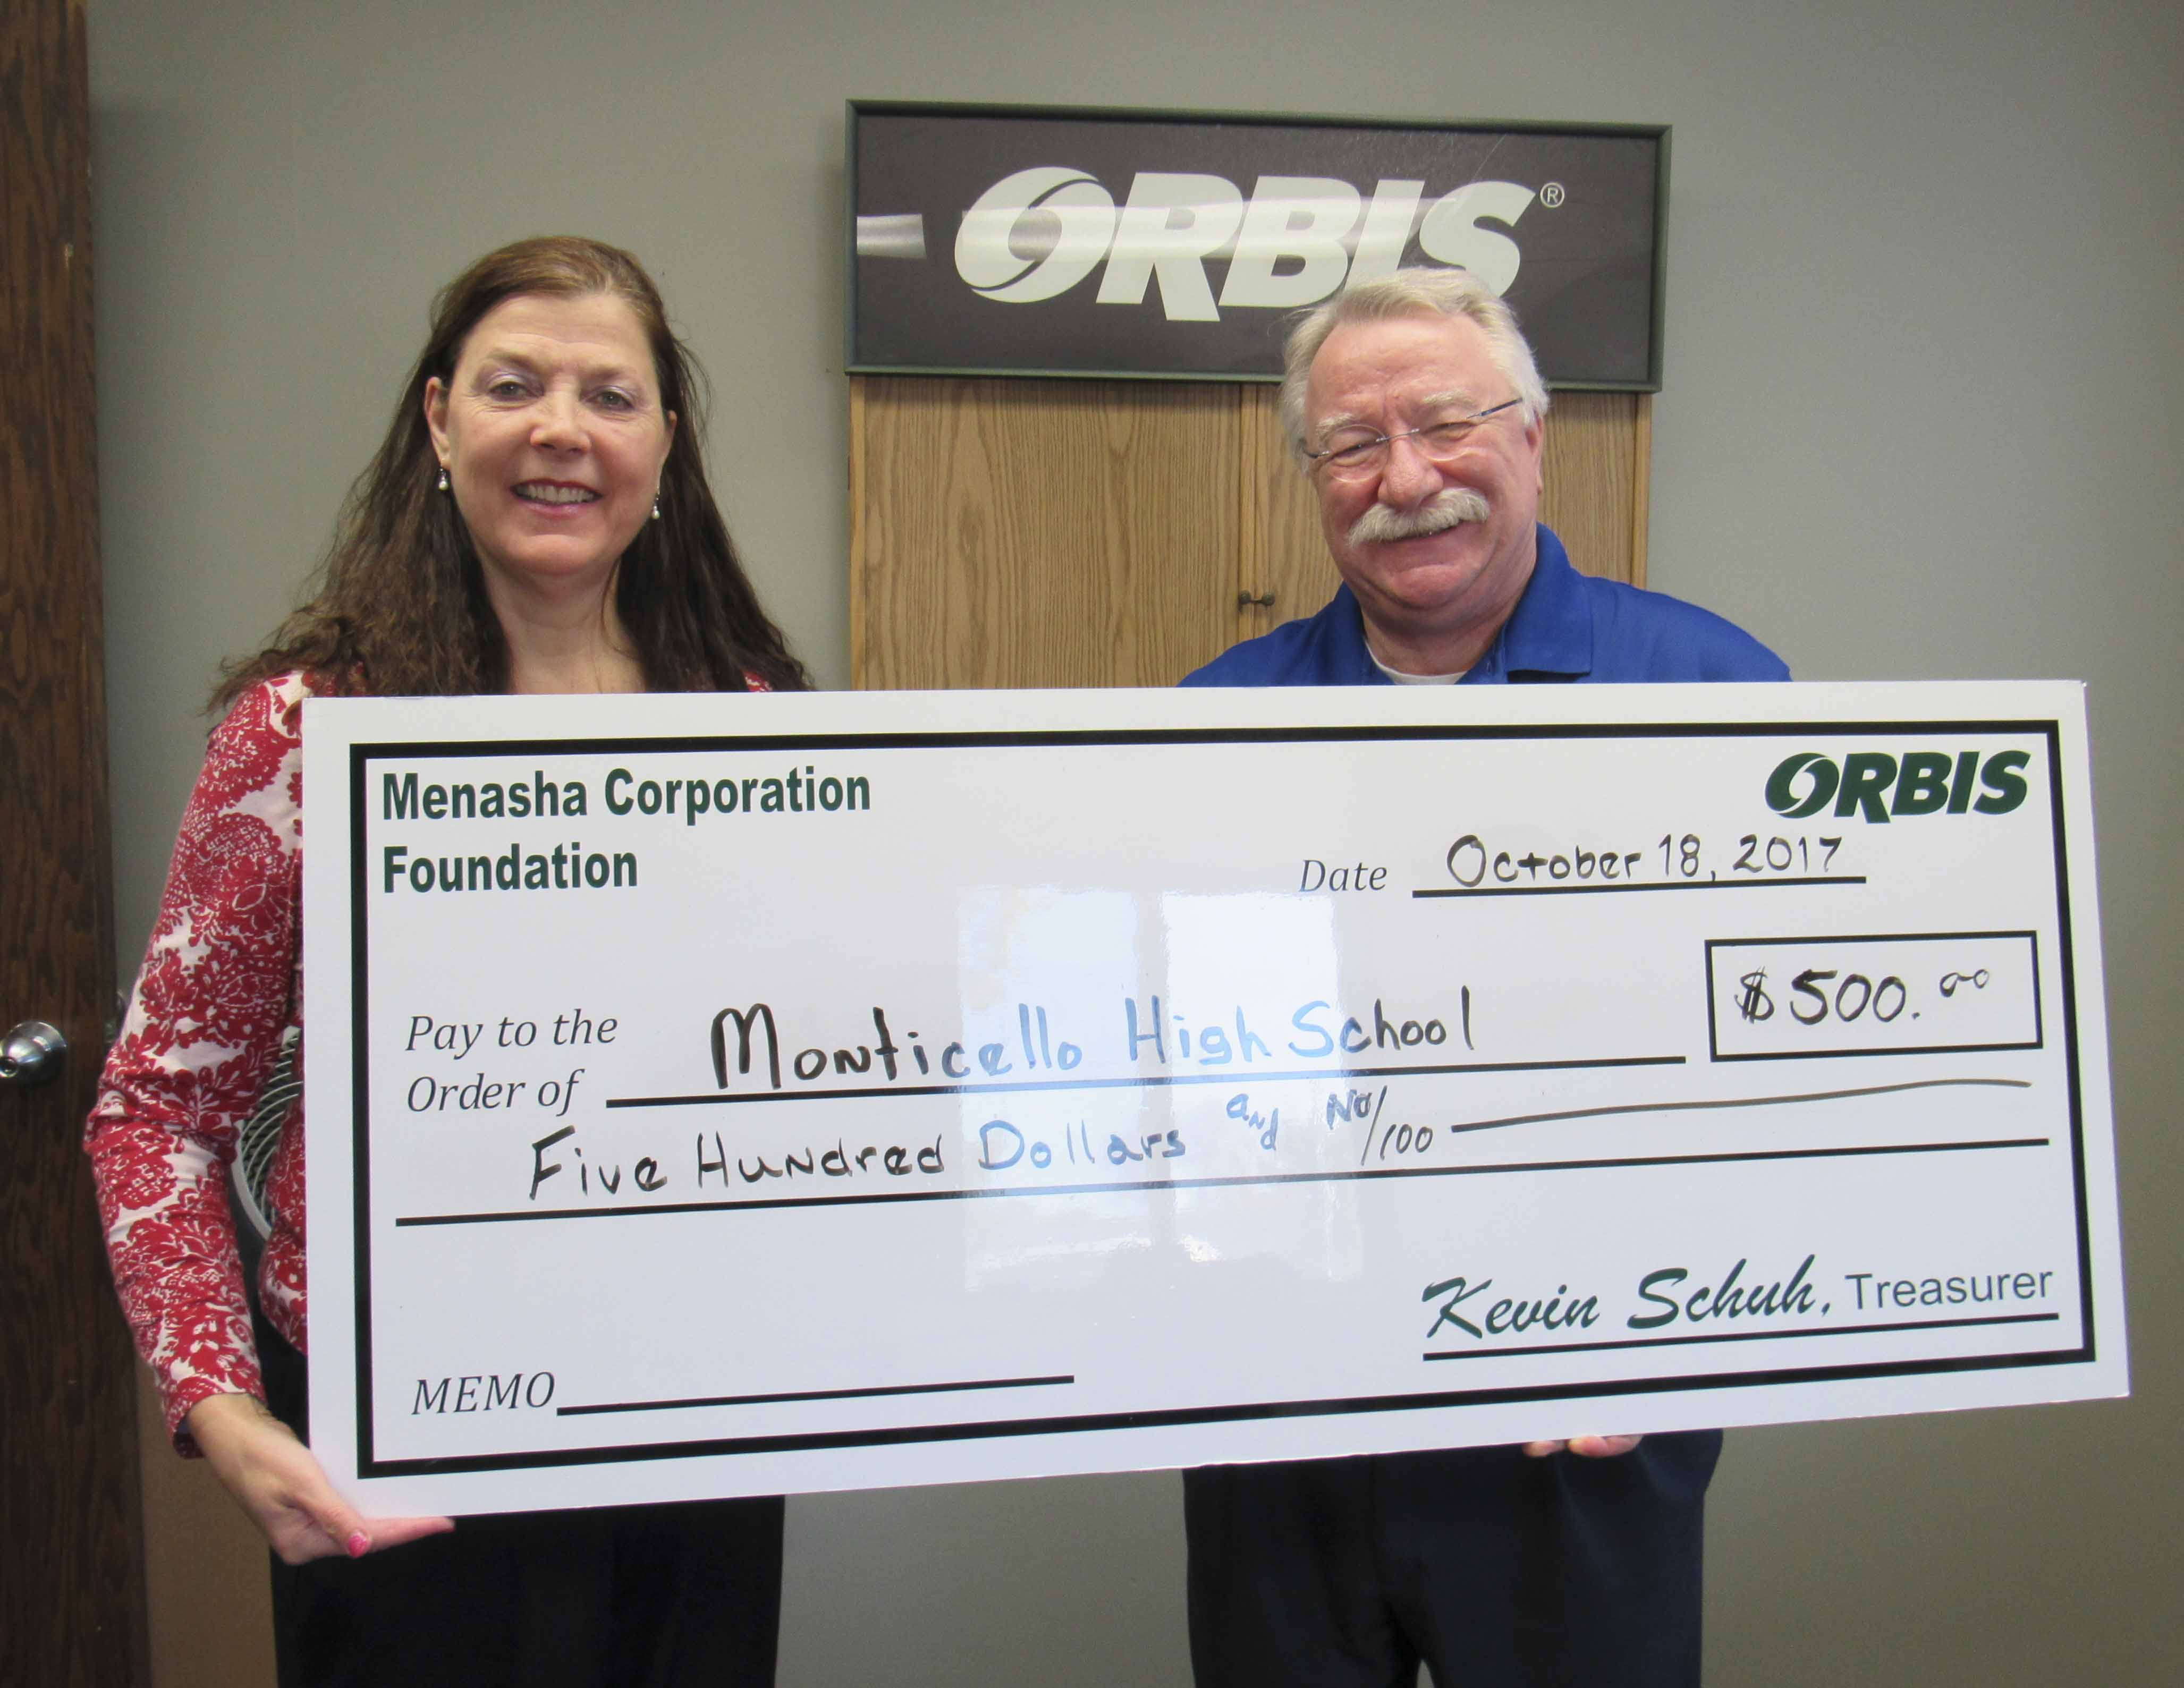 Monticello High School Principal Joan Young accepts a donation from Richard Talcott with Orbis. (Photo by Kim Brooks)